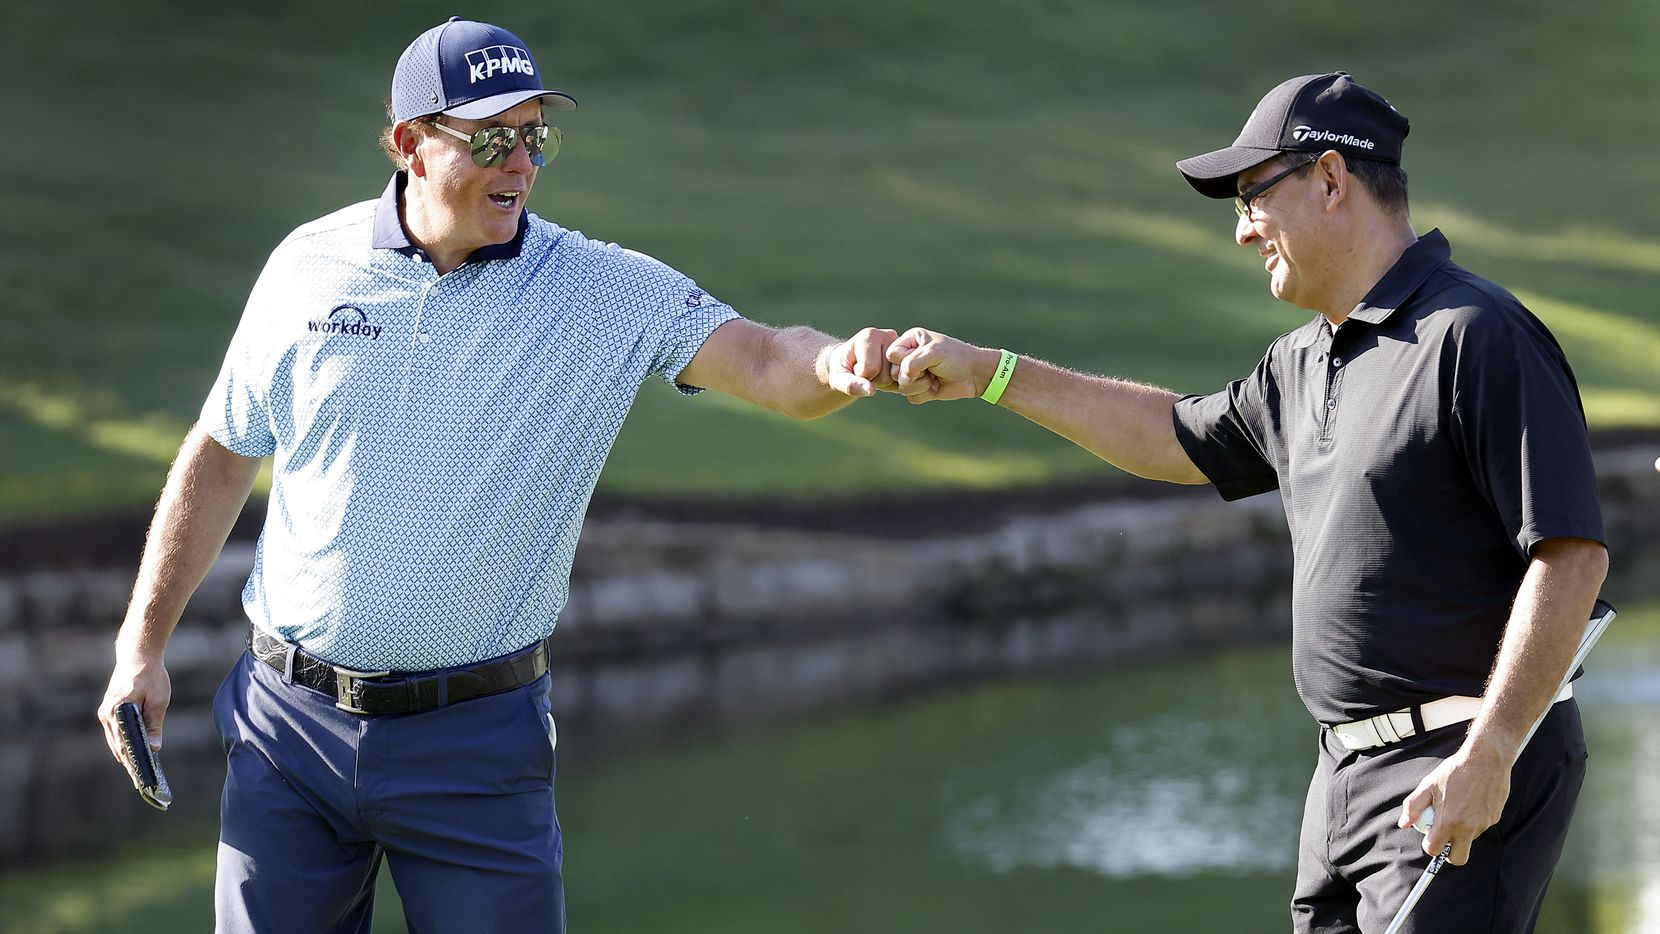 Golfer Phil Mickelson (left) gives a fist bump to playing partner Edgar Guevara after his clutch putt on No. 16 during the Charles Schwab Challenge Colonial Pro-Am at the Colonial Country Club in Fort Worth, Wednesday, May 26, 2021. Mickelson kept his commitment to play in the tourney after winning the PGA Championship last week. (Tom Fox/The Dallas Morning News)